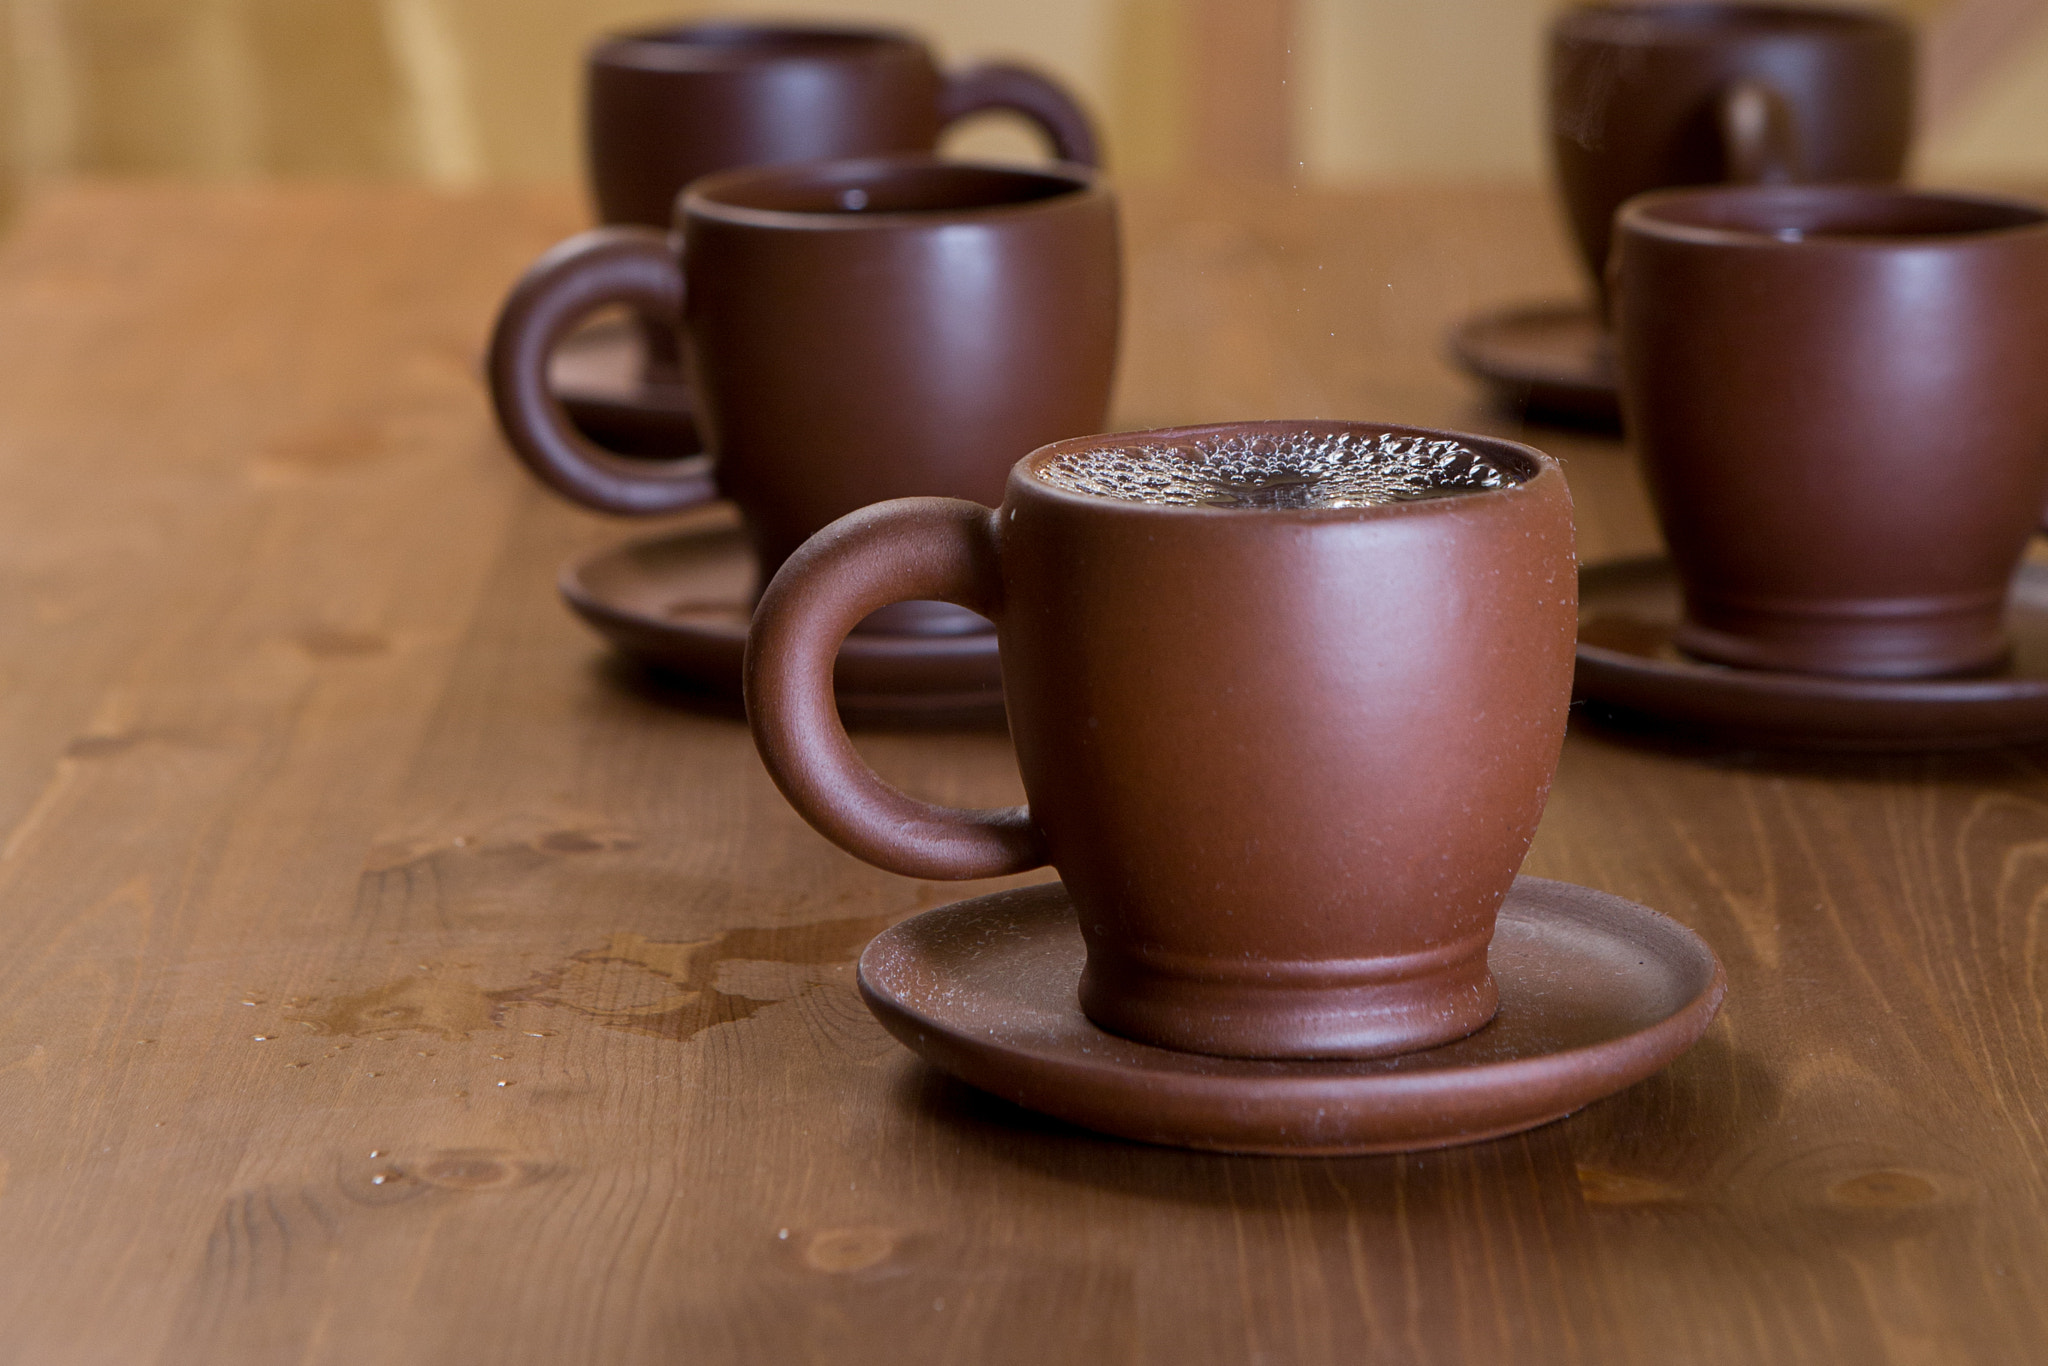 Photograph Clay cups on a wooden table by Ruslan Grigoriev on 500px